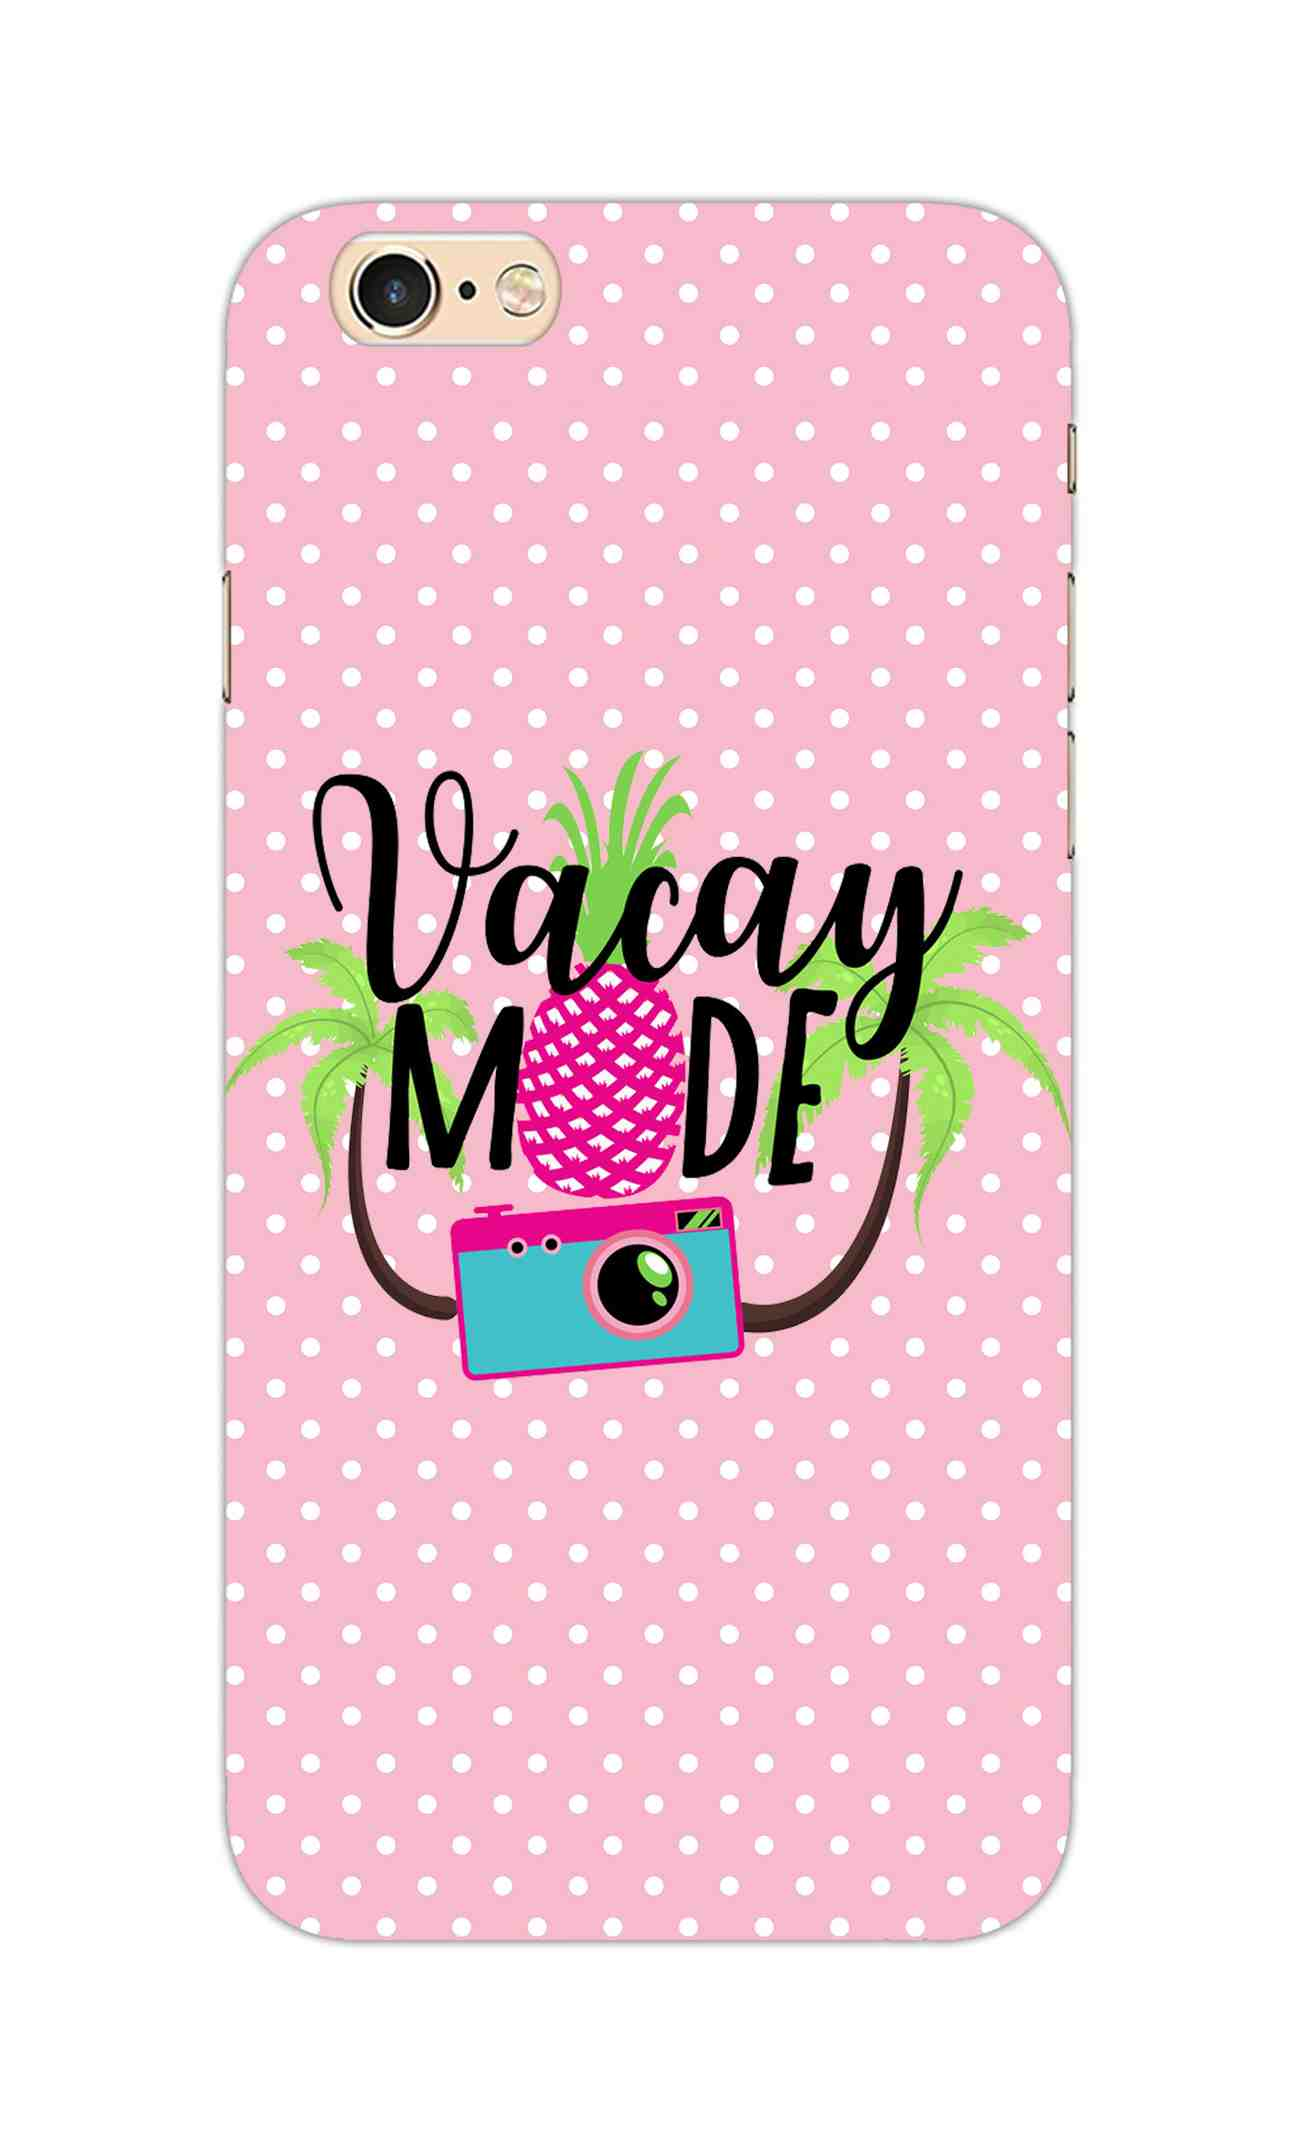 Vacay Mode With Cute White Dots Typography iPhone 6S Mobile Cover Case - MADANYU